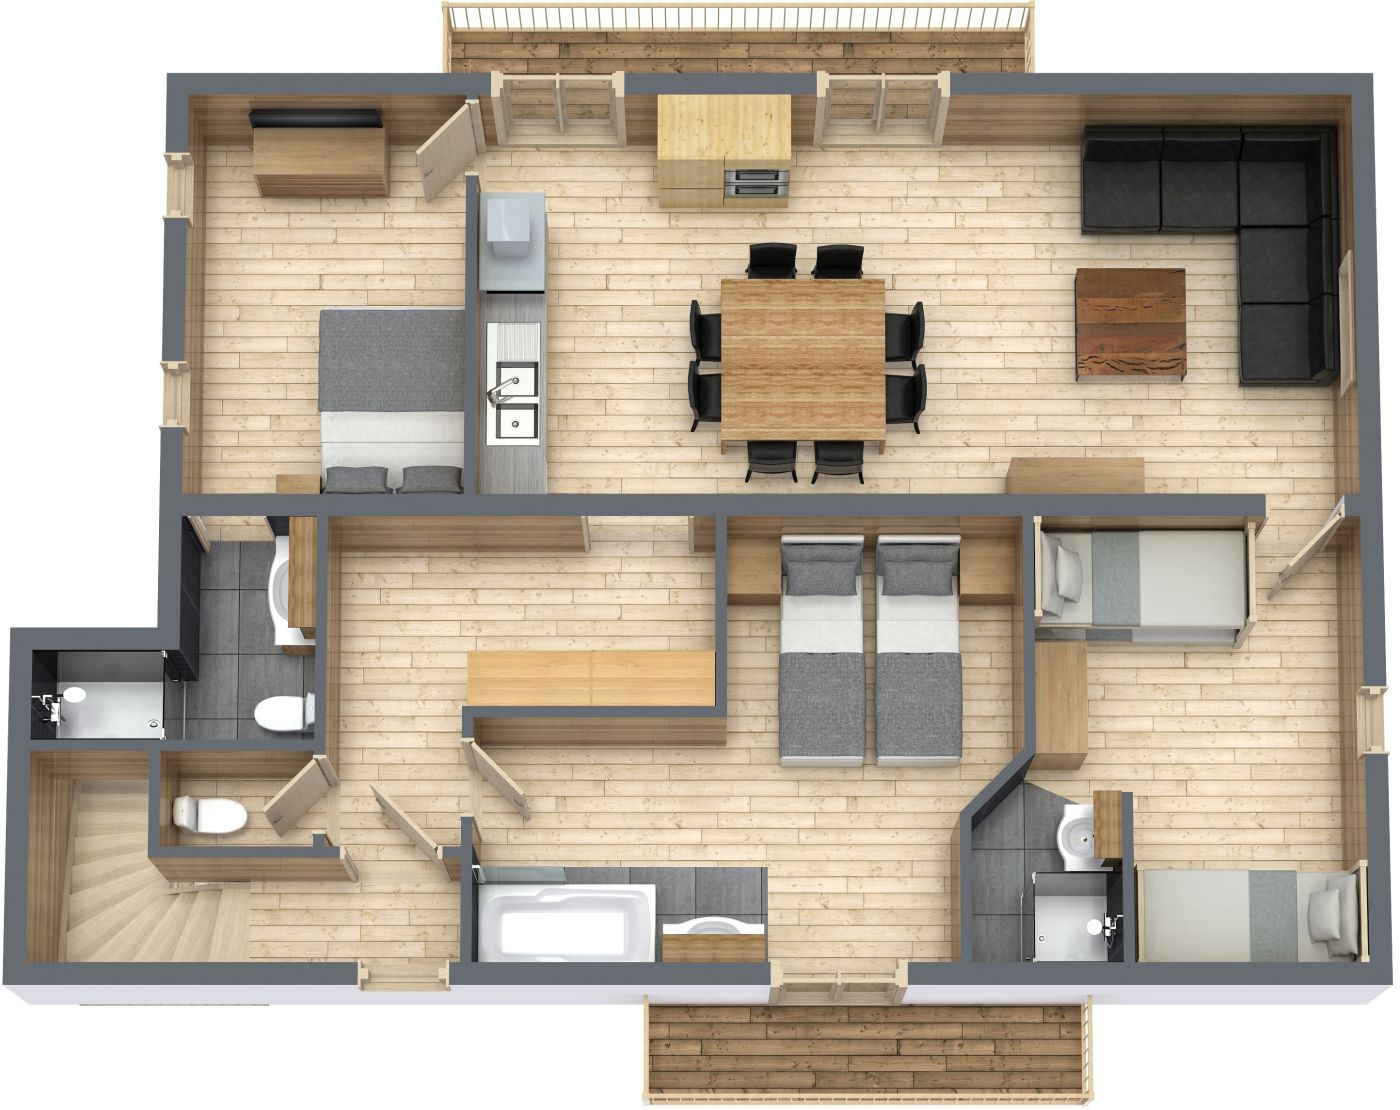 Floorplan of Chalet La Rocade Top FLoor